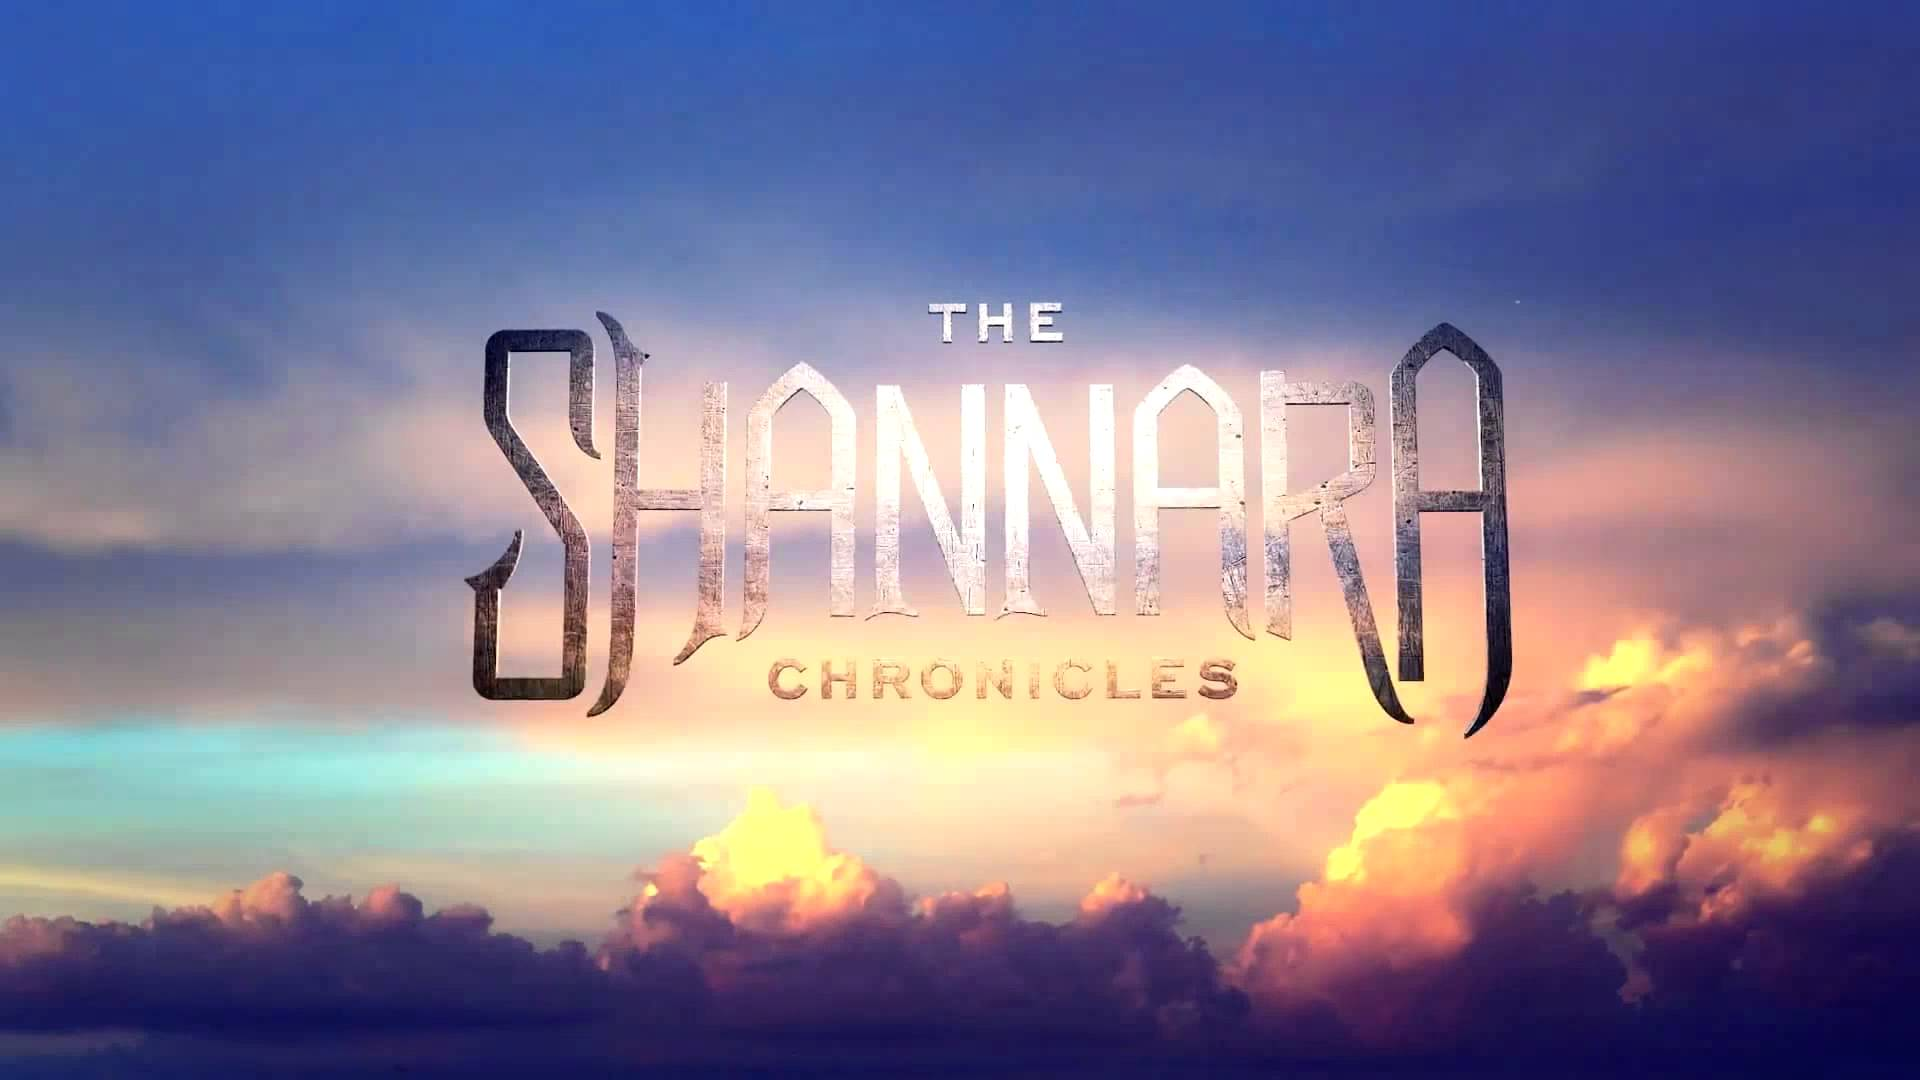 The shannara chronicles recensione e differenze tra la serie tv e the shannara chronicles recensione e differenze tra la serie tv e il libro fandeluxe Gallery